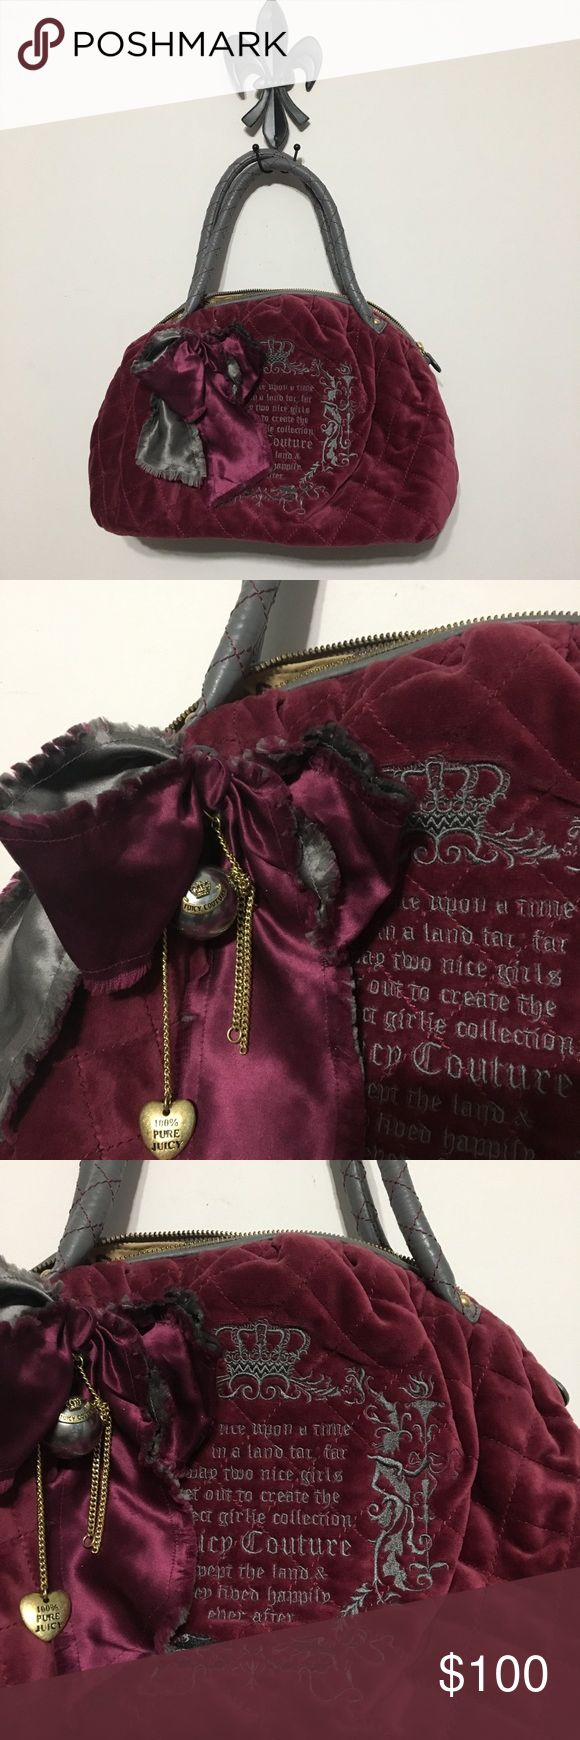 Juicy Couture Nordstrom Velvet Quilted Handbag Juicy Couture Nordstrom Velvet Quilted Maroon Handbag Once Upon A Time.                                Fabulous handbag!!! Great condition as shown in pics. Purchased from Nordstrom.  Please note all sales final. Thank you for viewing🎀 Juicy Couture Bags Satchels